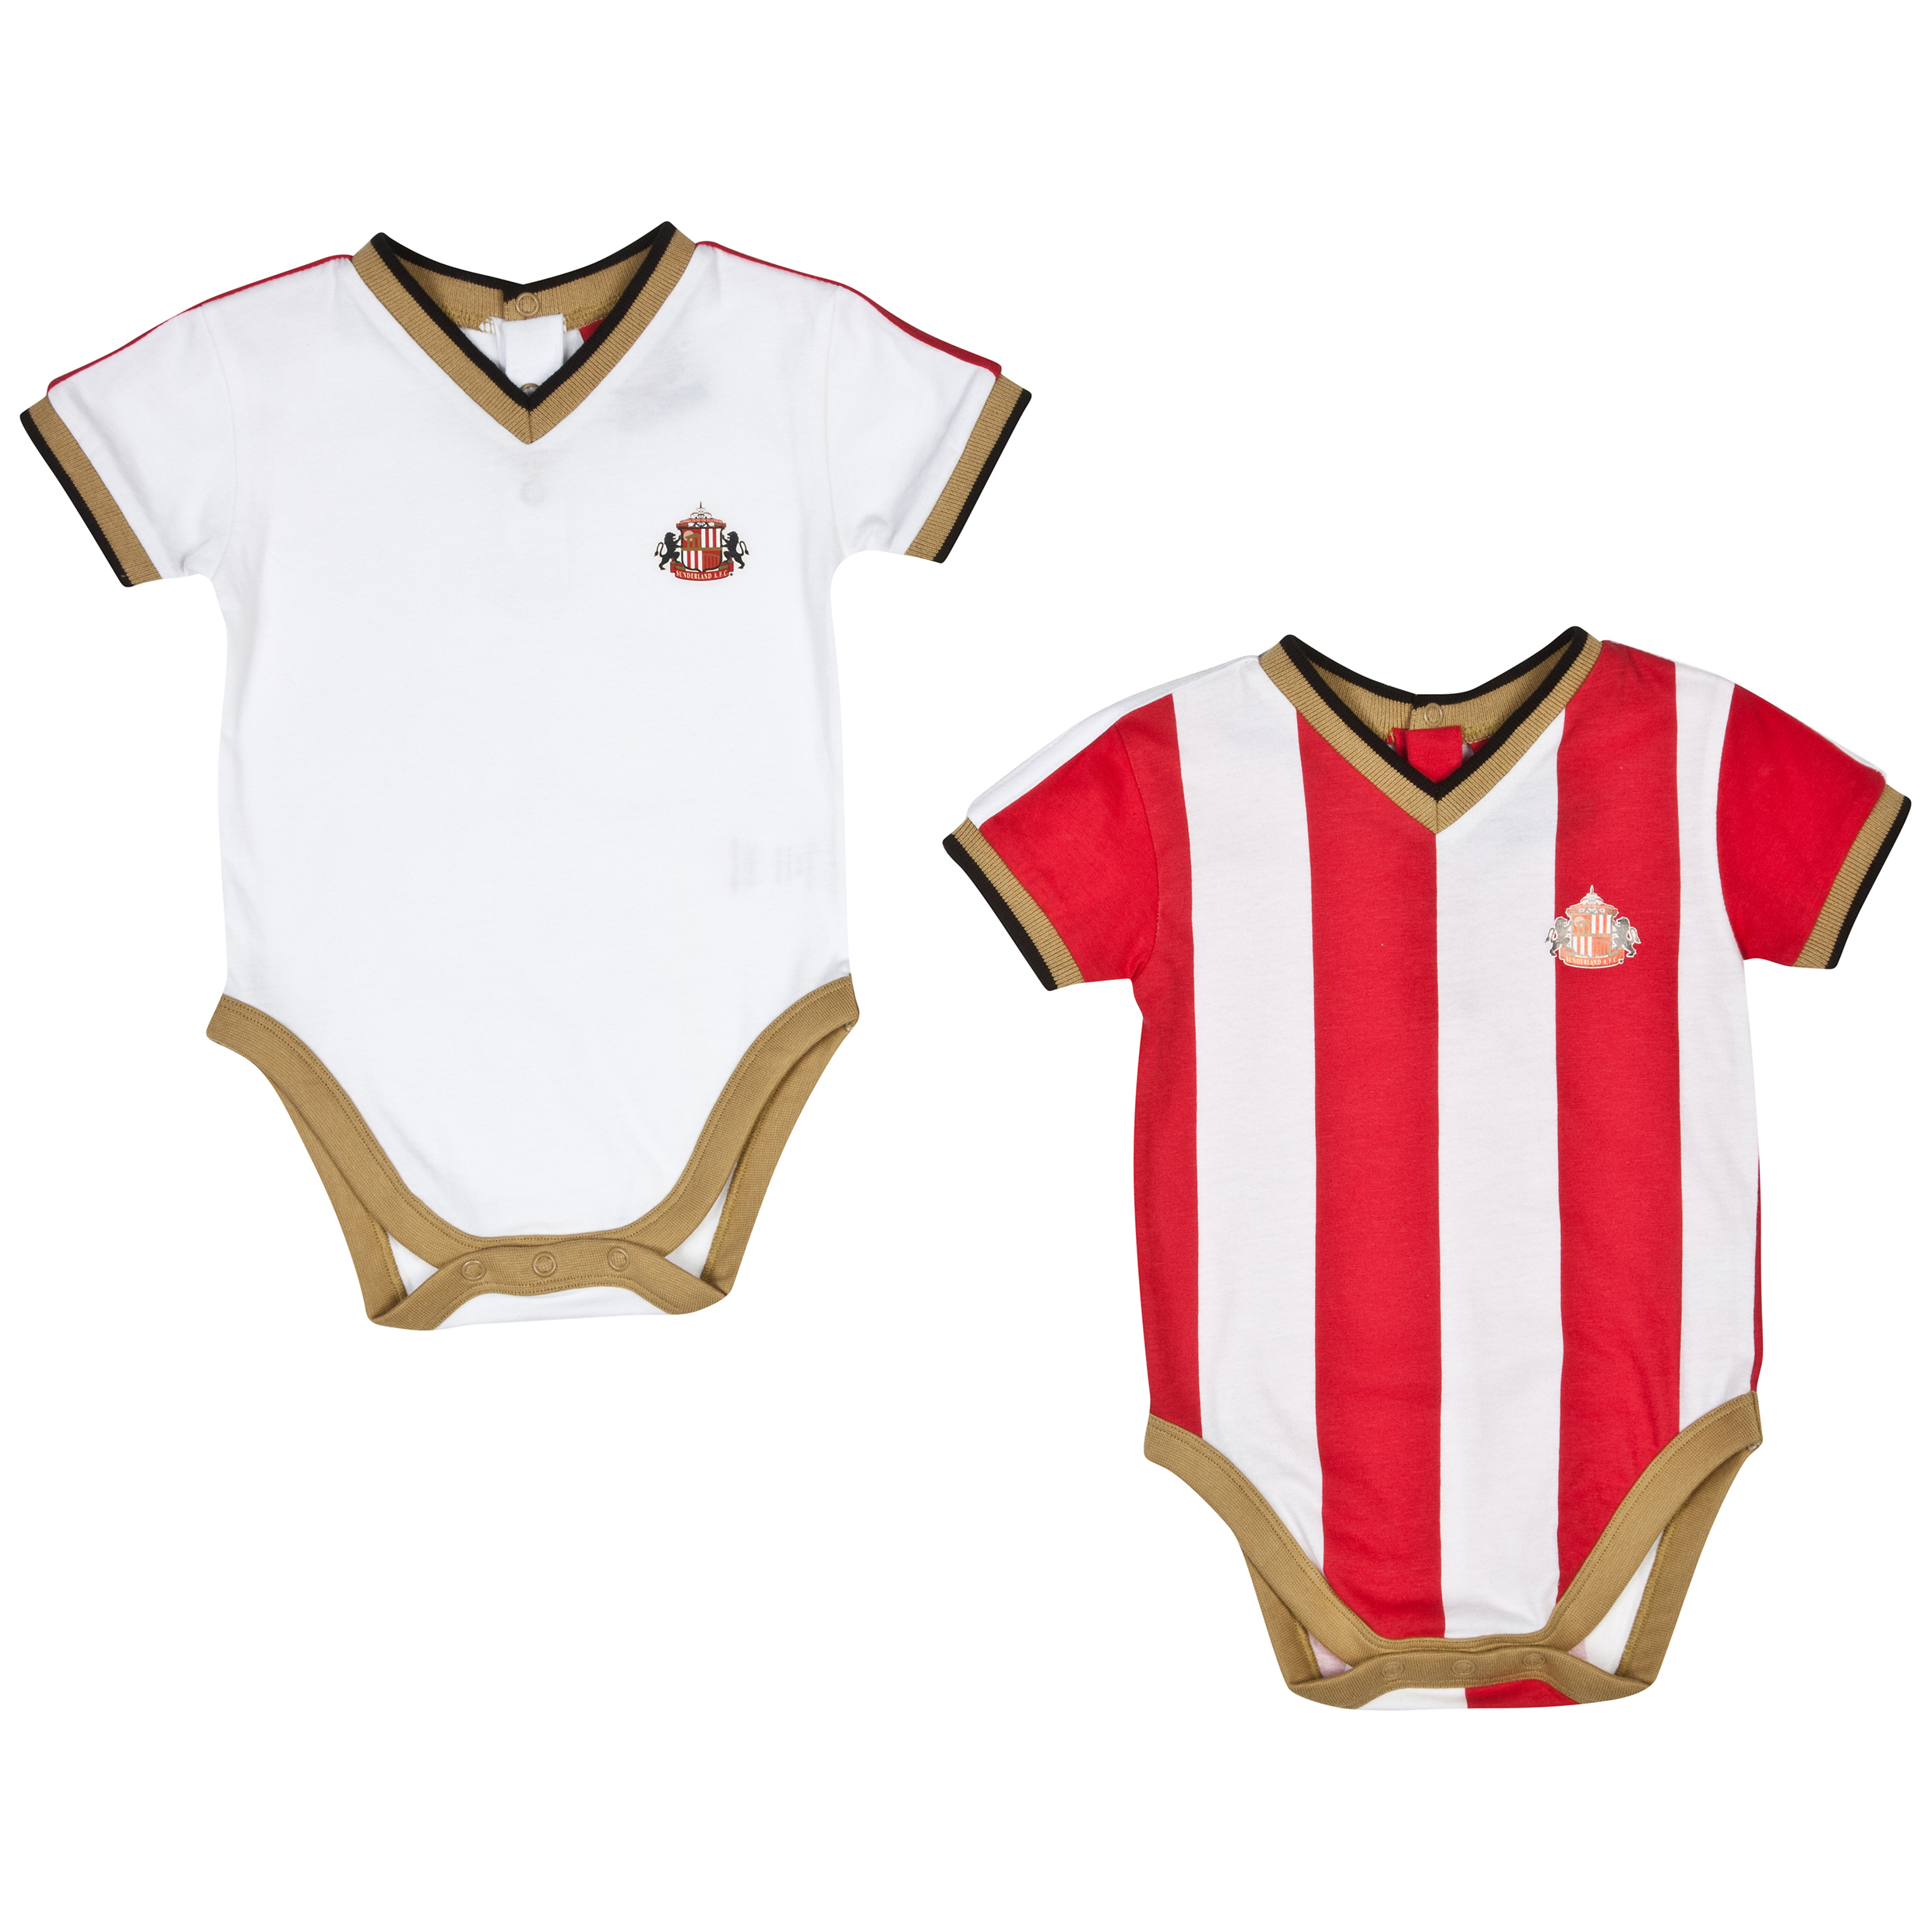 Sunderland 14/15 Kit 2PK Bodysuits - Red/White - Baby